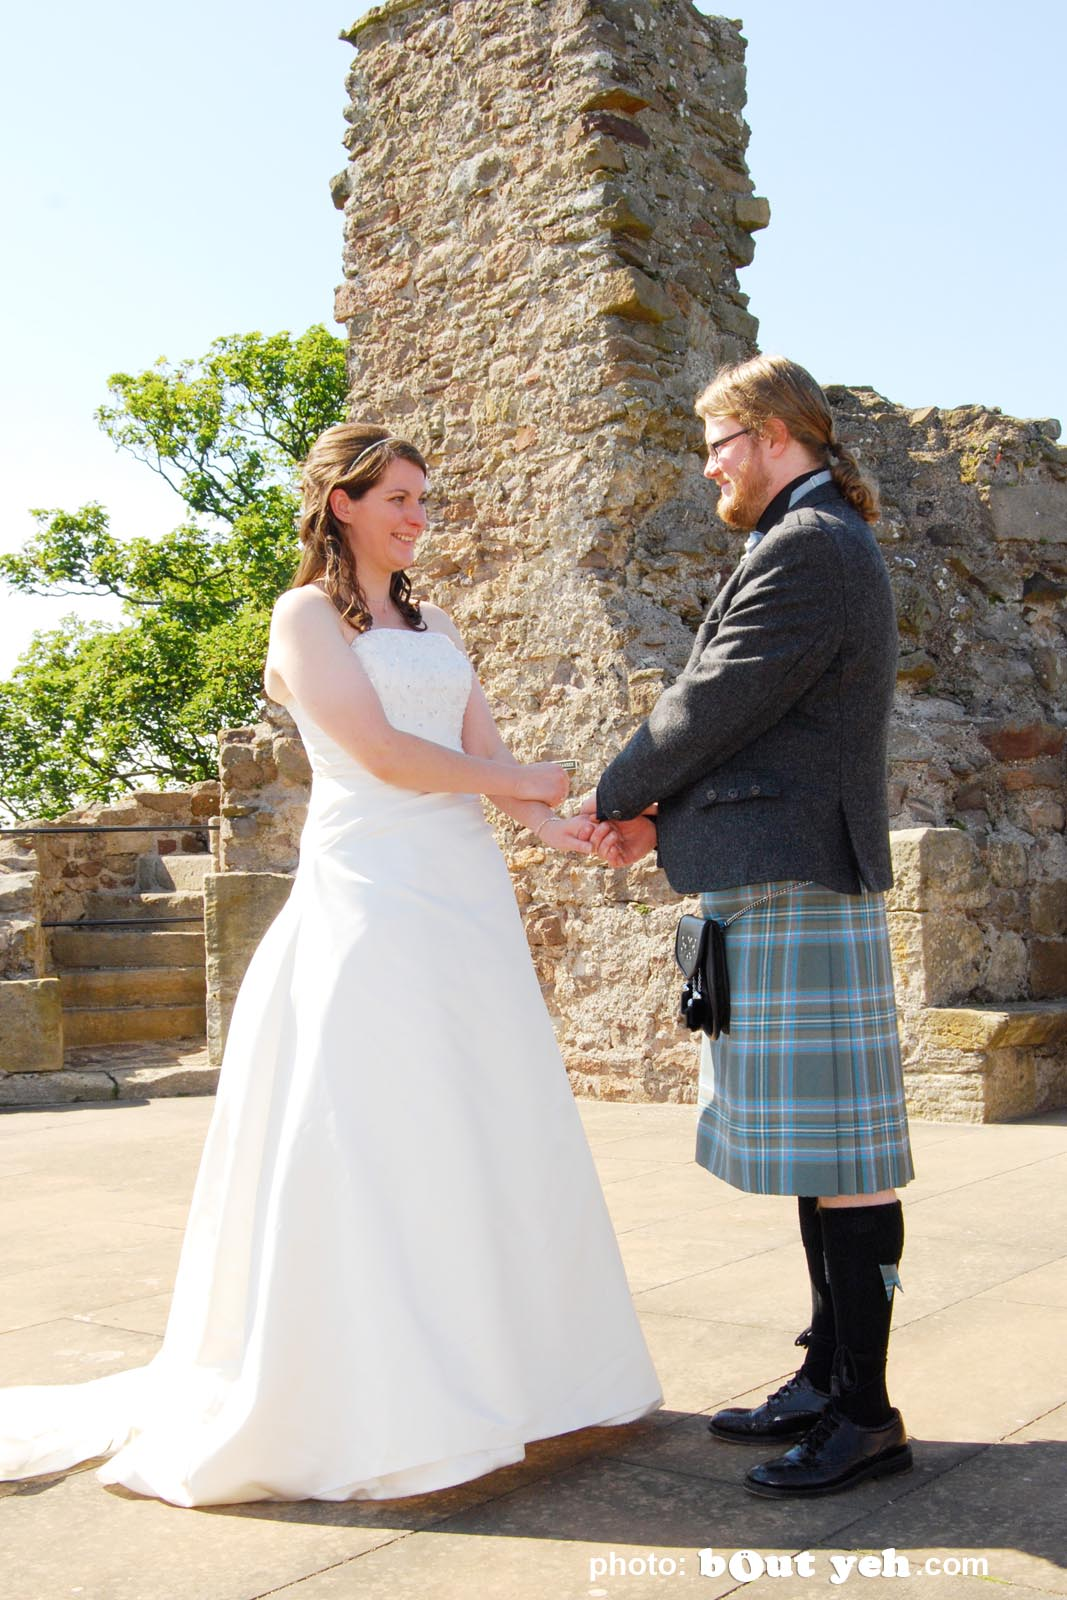 Davy and Niamh's wedding photographed by Bout Yeh wedding photographers and video services Belfast and Northern Ireland. Photo 2077